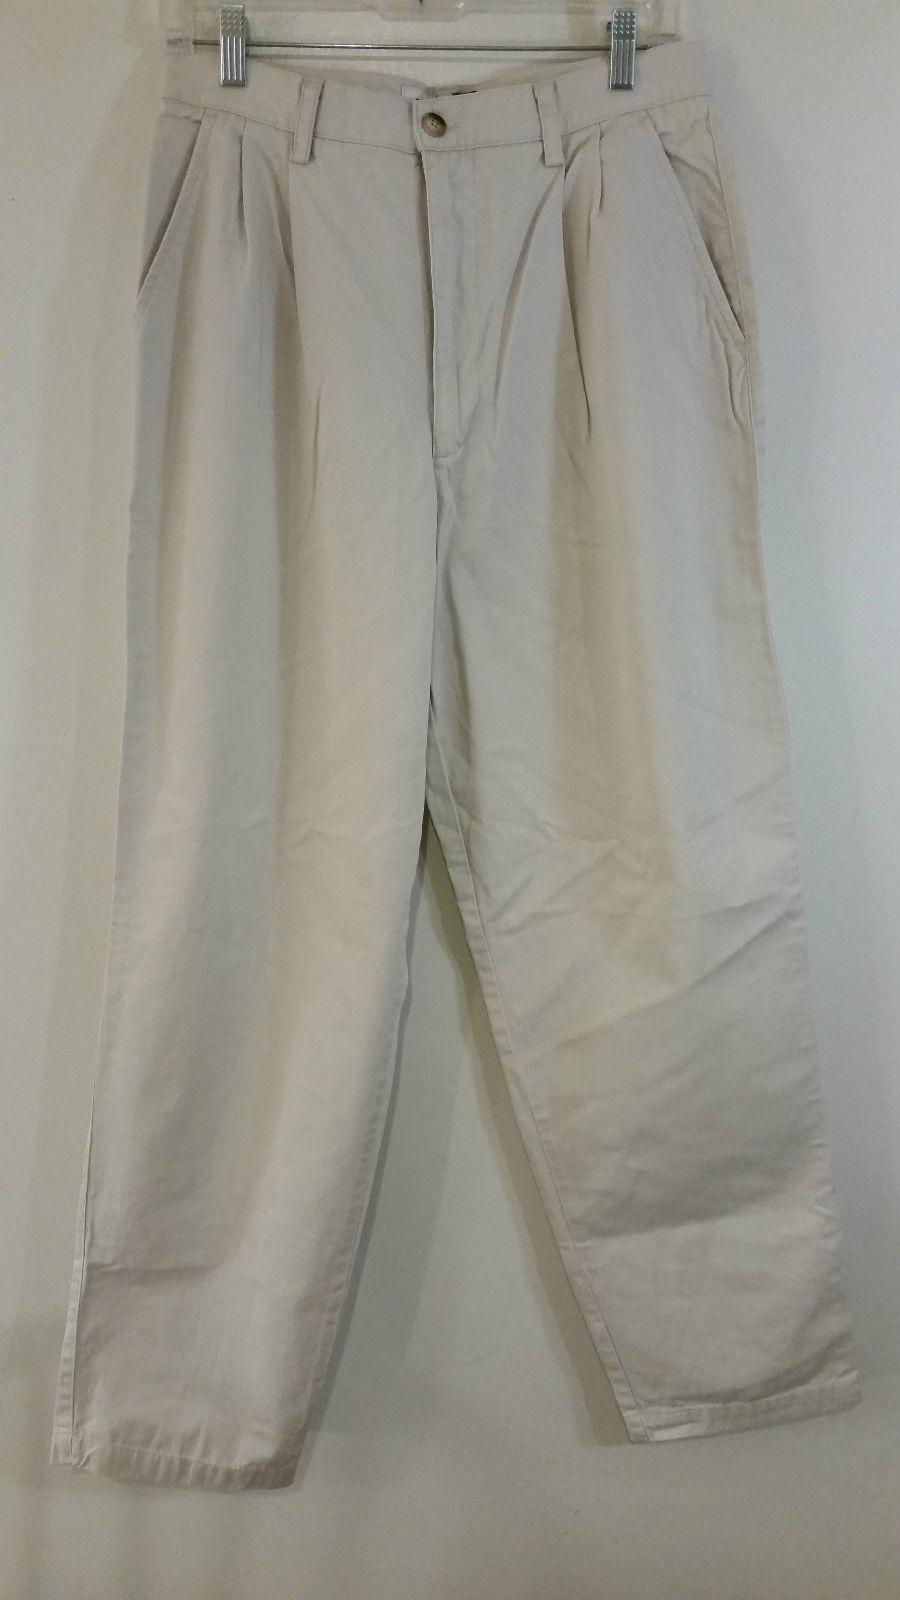 Classic Gap Khaki Colored 100 Percent Cotton Pleated Front Casual Pants Size 12R